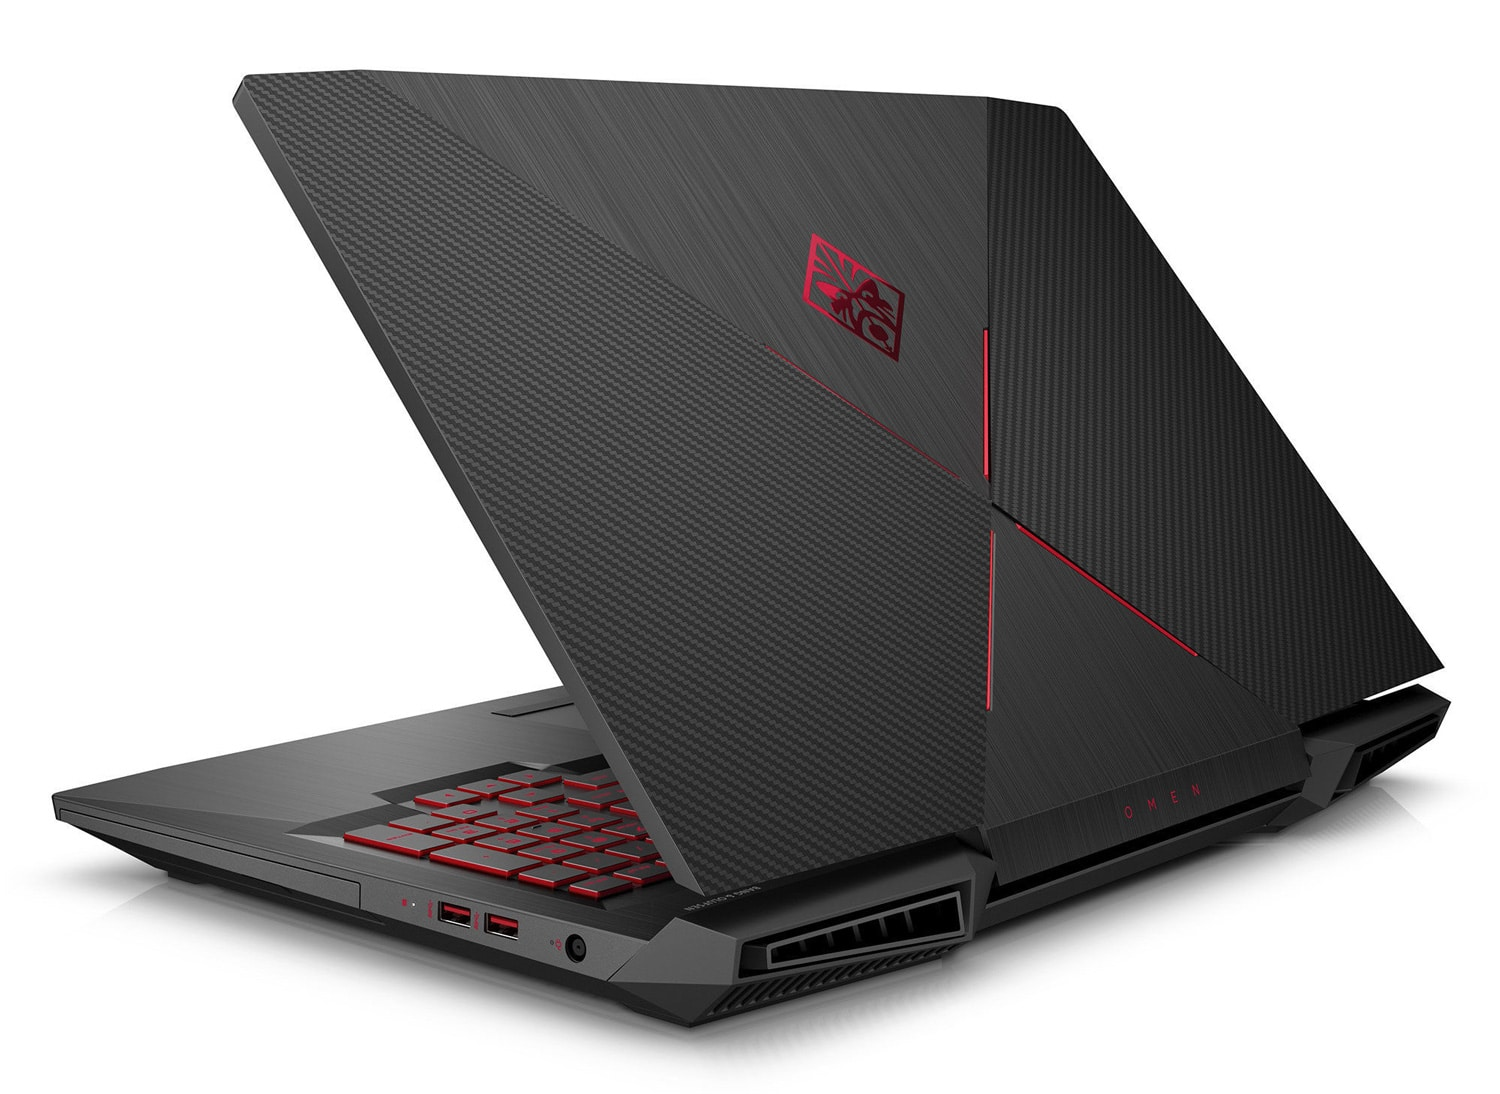 "HP Omen 17-an129nf, PC portable 17"" IPS 120Hz GTX 1070 SSD Coffee Hexa 1499€"